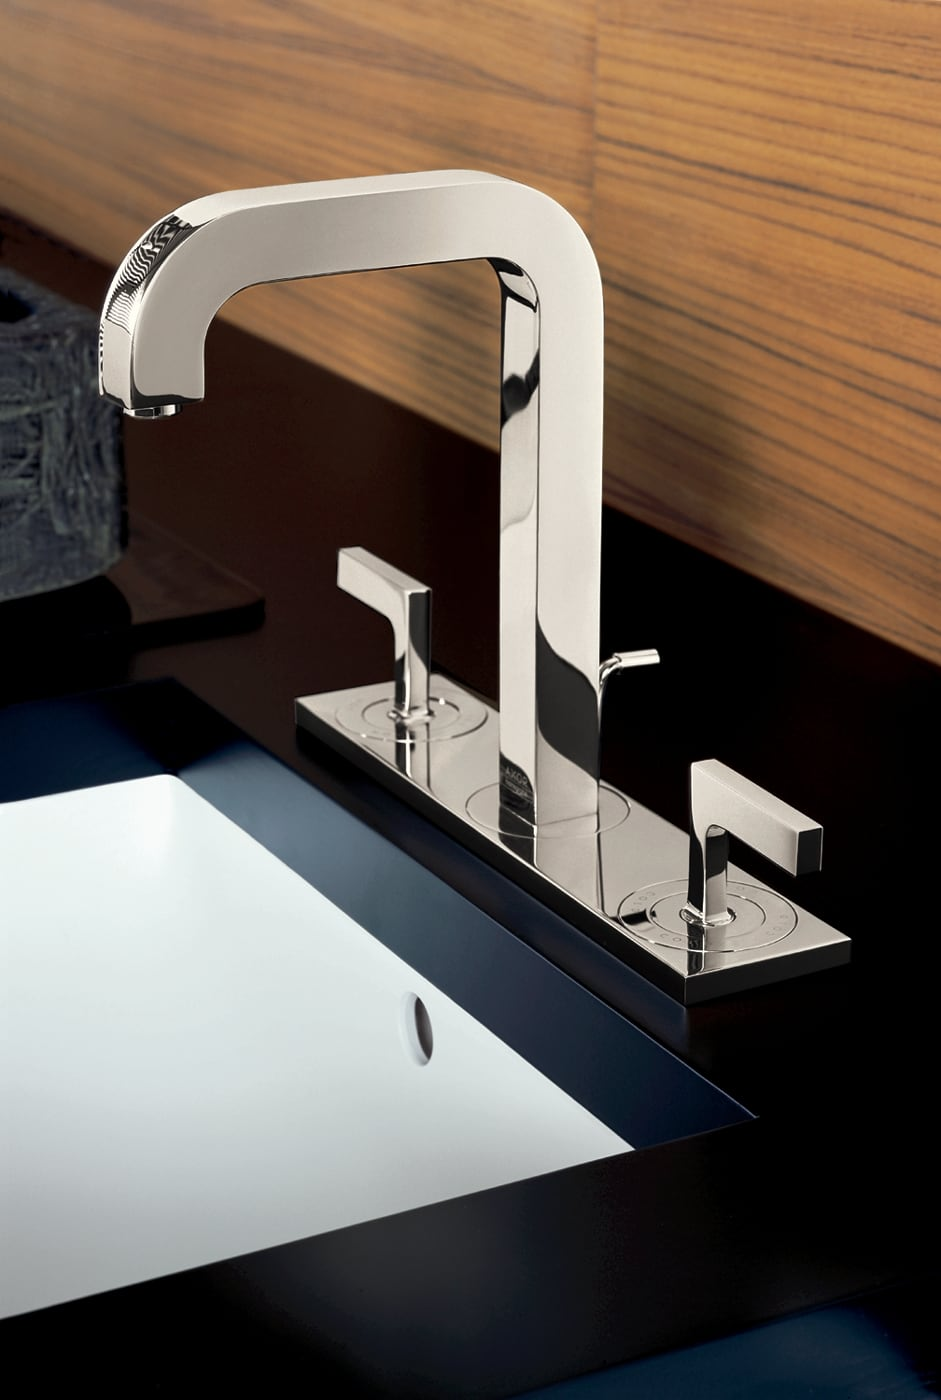 Hansgrohe 39136821 Brushed Nickel Axor Citterio Bathroom Faucet ...